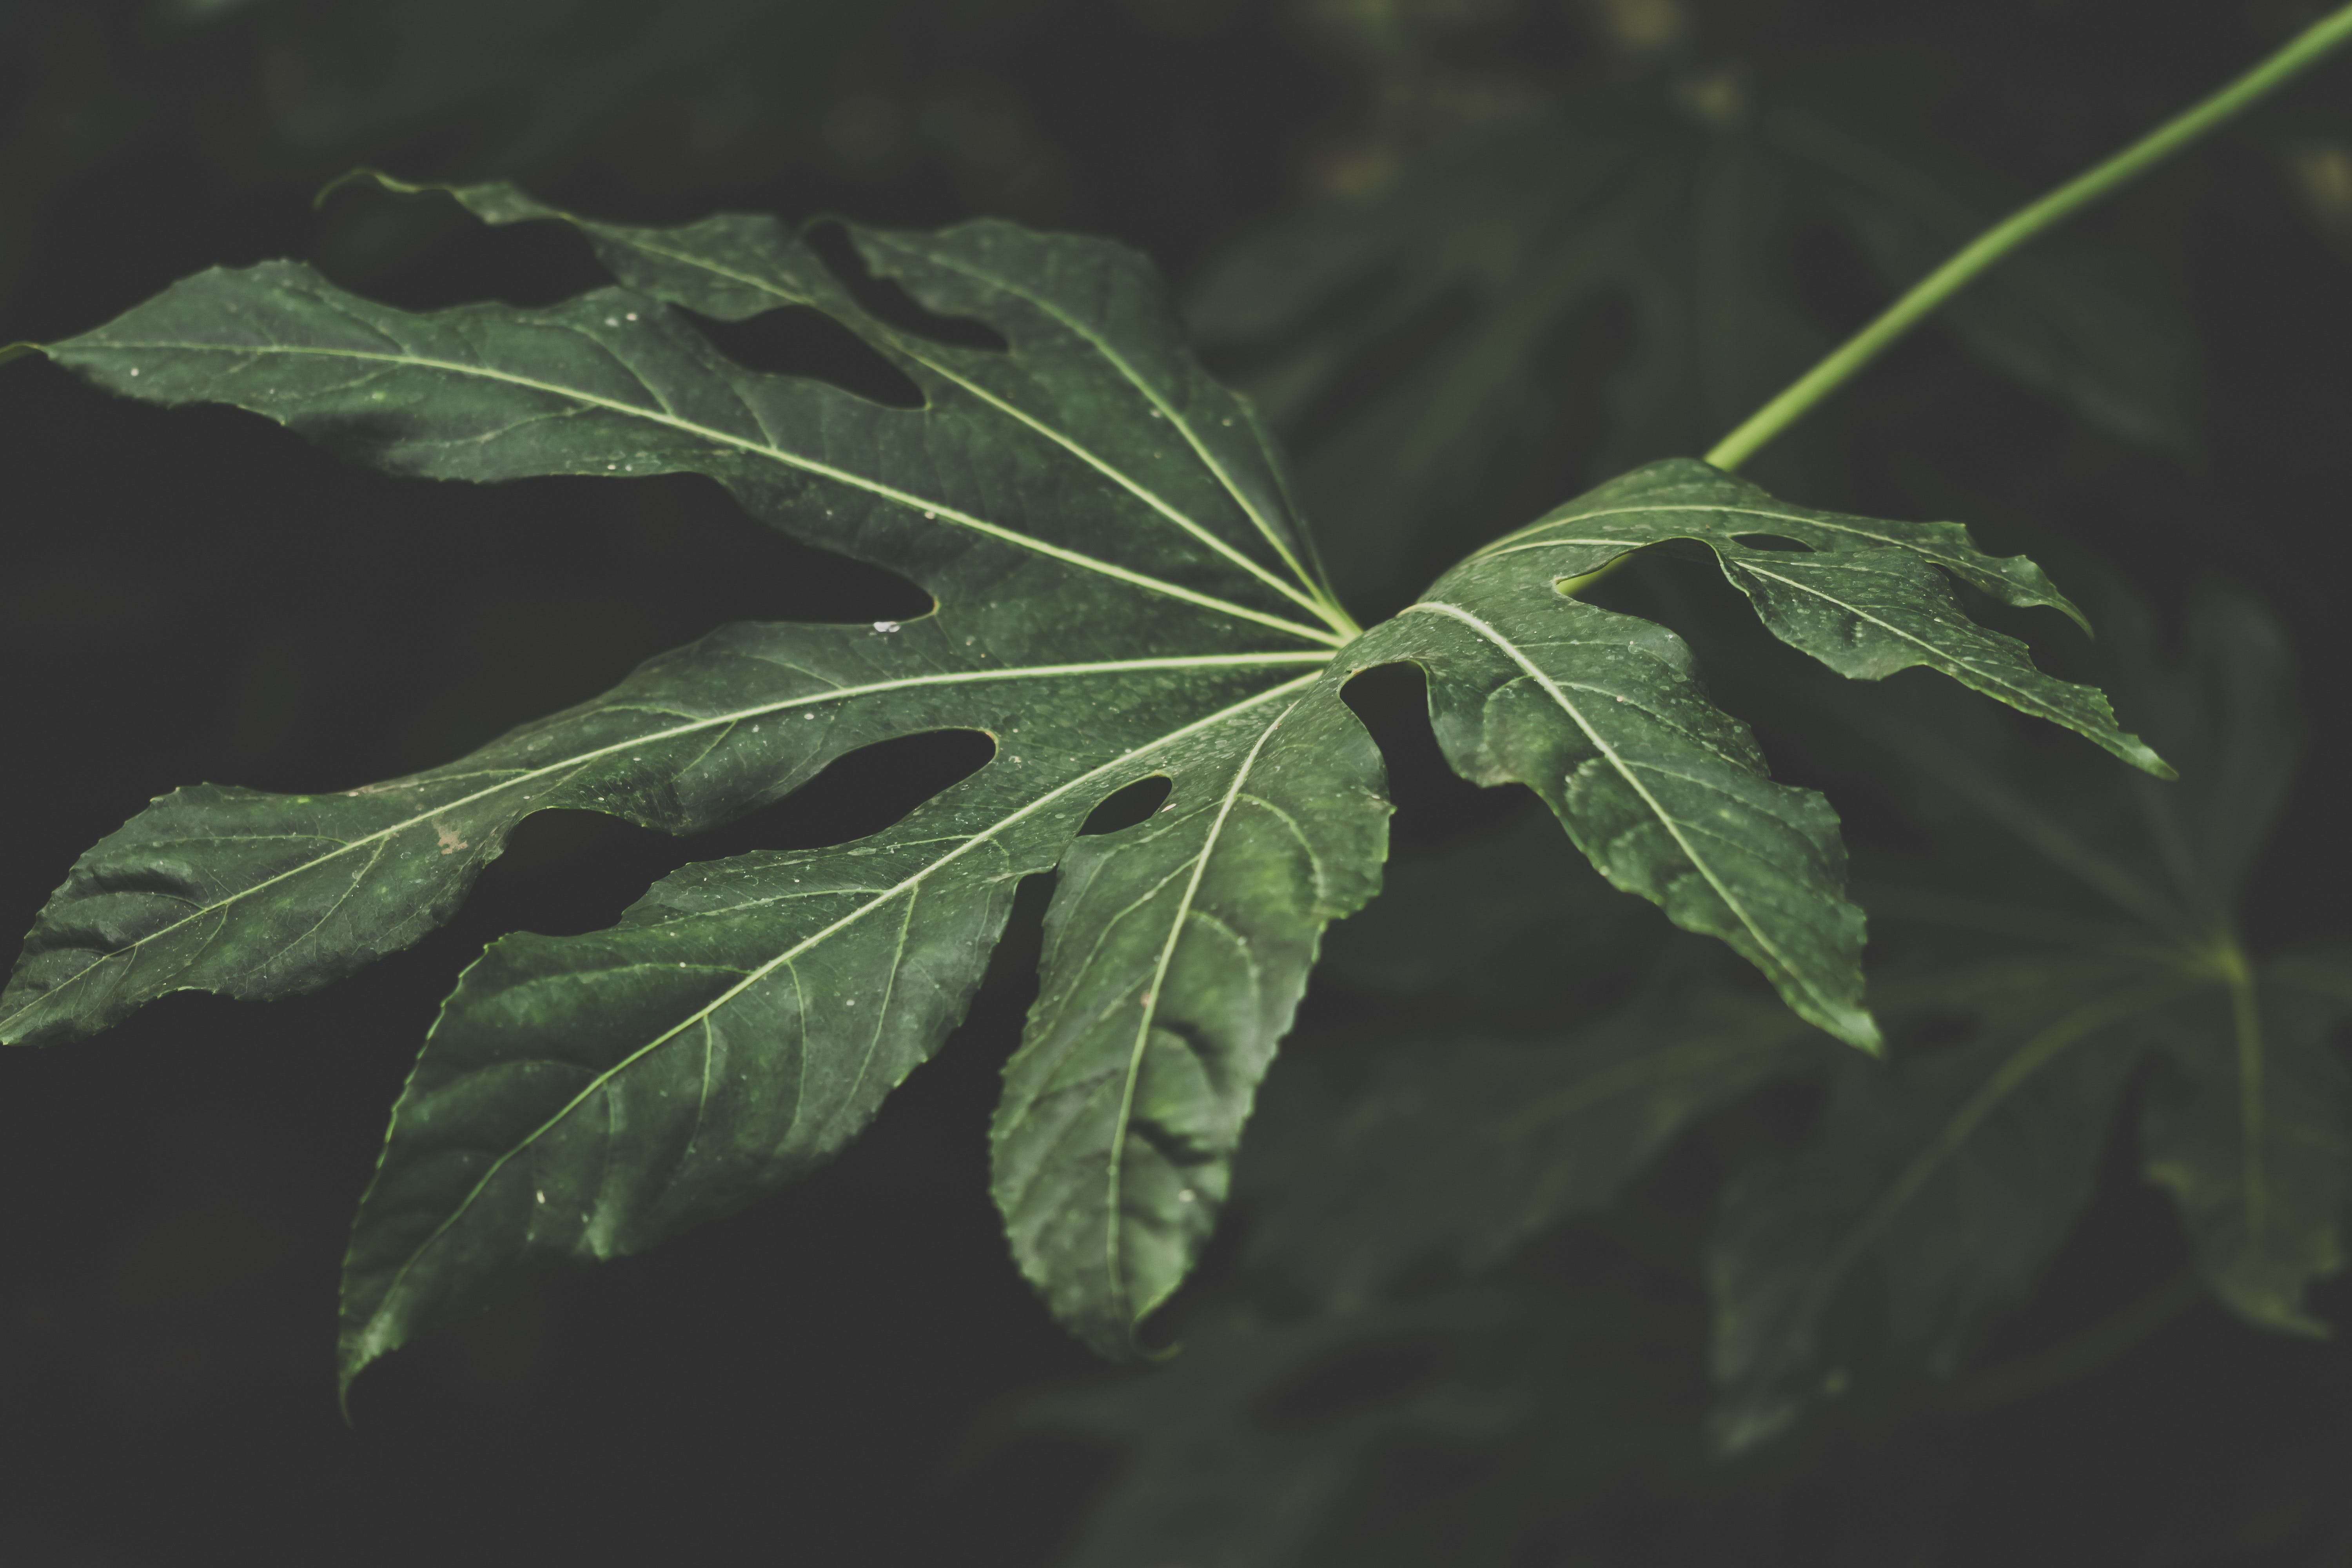 Focus Photography of Green Leafed Plant